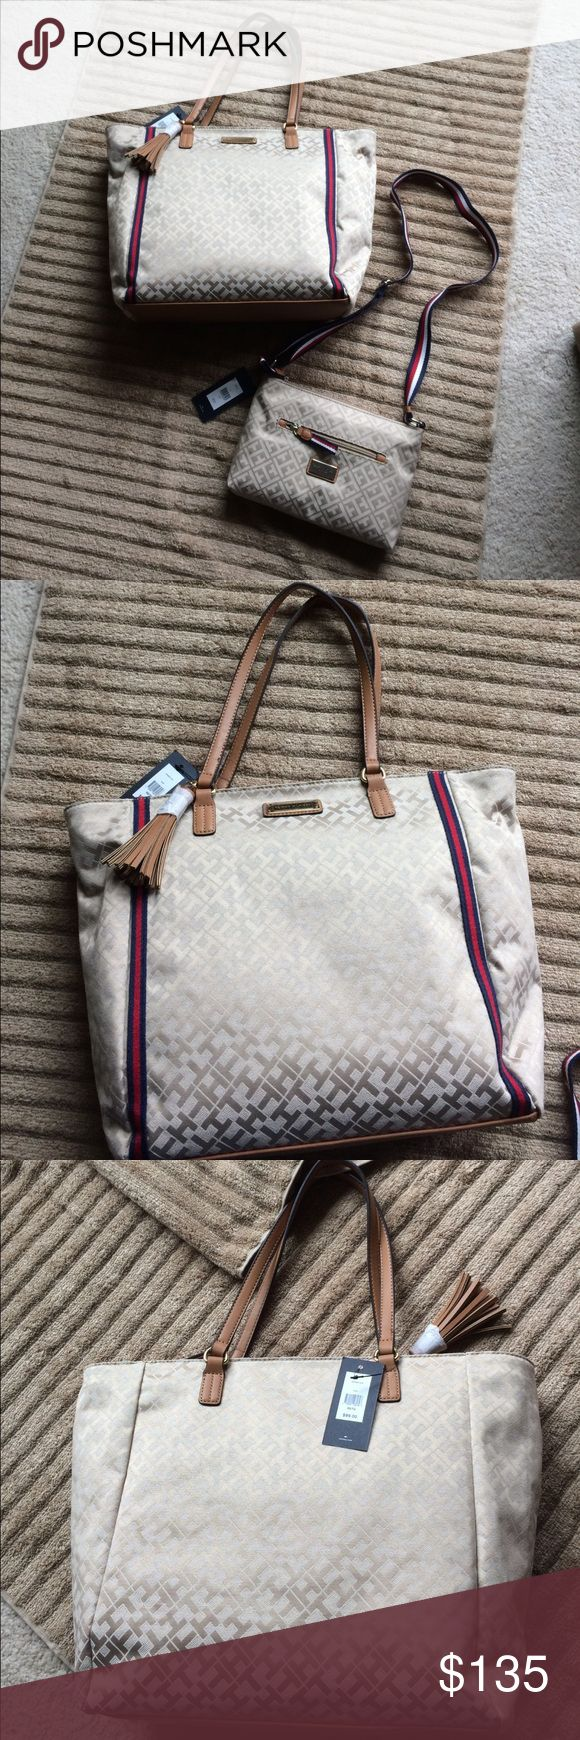 Selling this NWT TOMMY HILFIGER 👜's on Poshmark! My username is: kdelwiche. #shopmycloset #poshmark #fashion #shopping #style #forsale #Tommy Hilfiger #Handbags